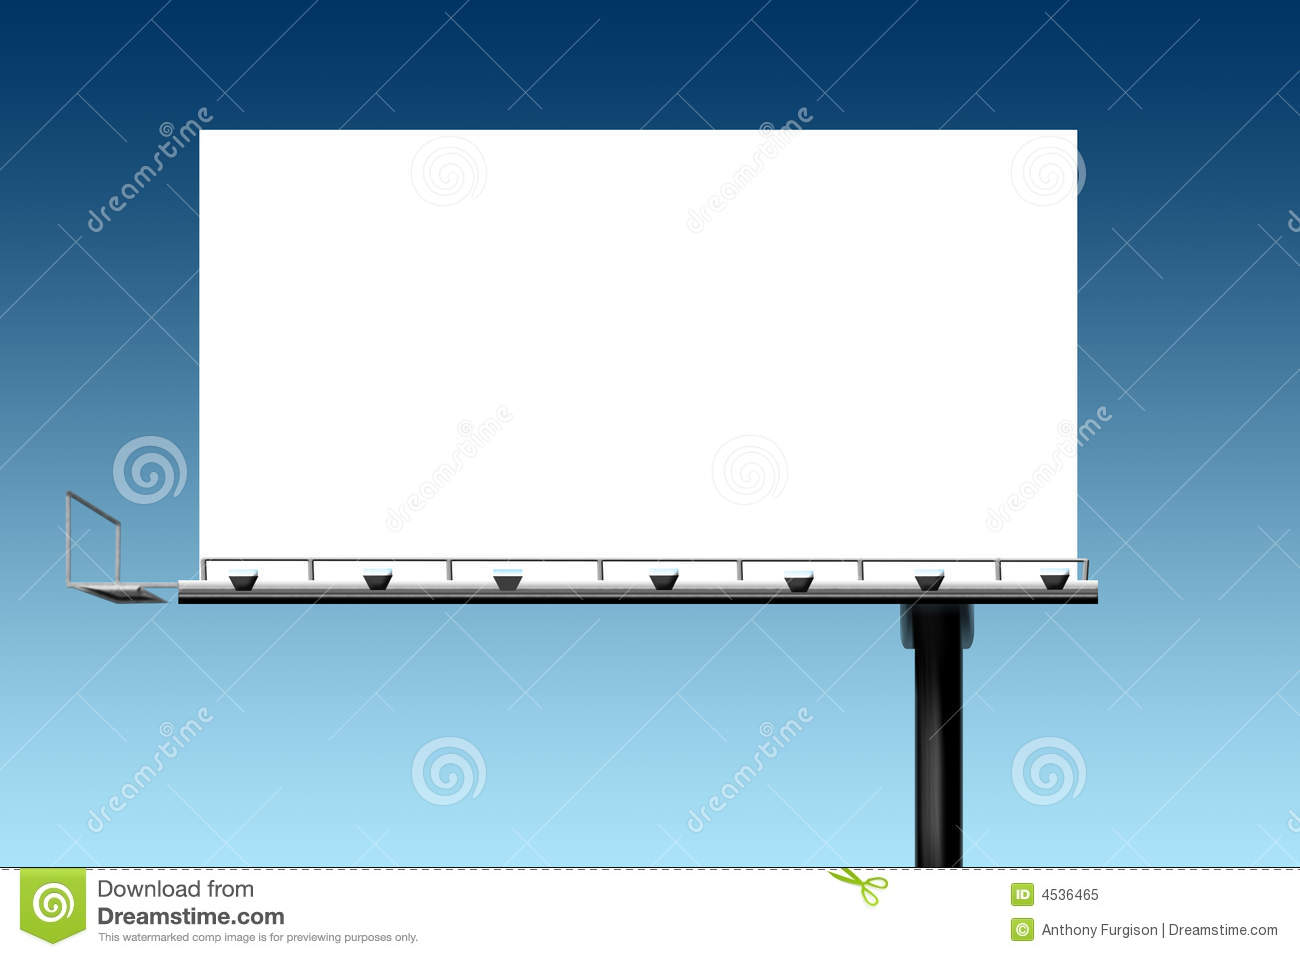 Free Billboard Branding Mockup Designs in addition Two Bus Shelter Mockups in addition Collectionbdwn Blank Hanging Banner likewise Isc Marketing Ex le Of Launching Plan as well Stock Image Outdoor Advertising Billboards Sky Background Image31357811. on outdoor billboard template